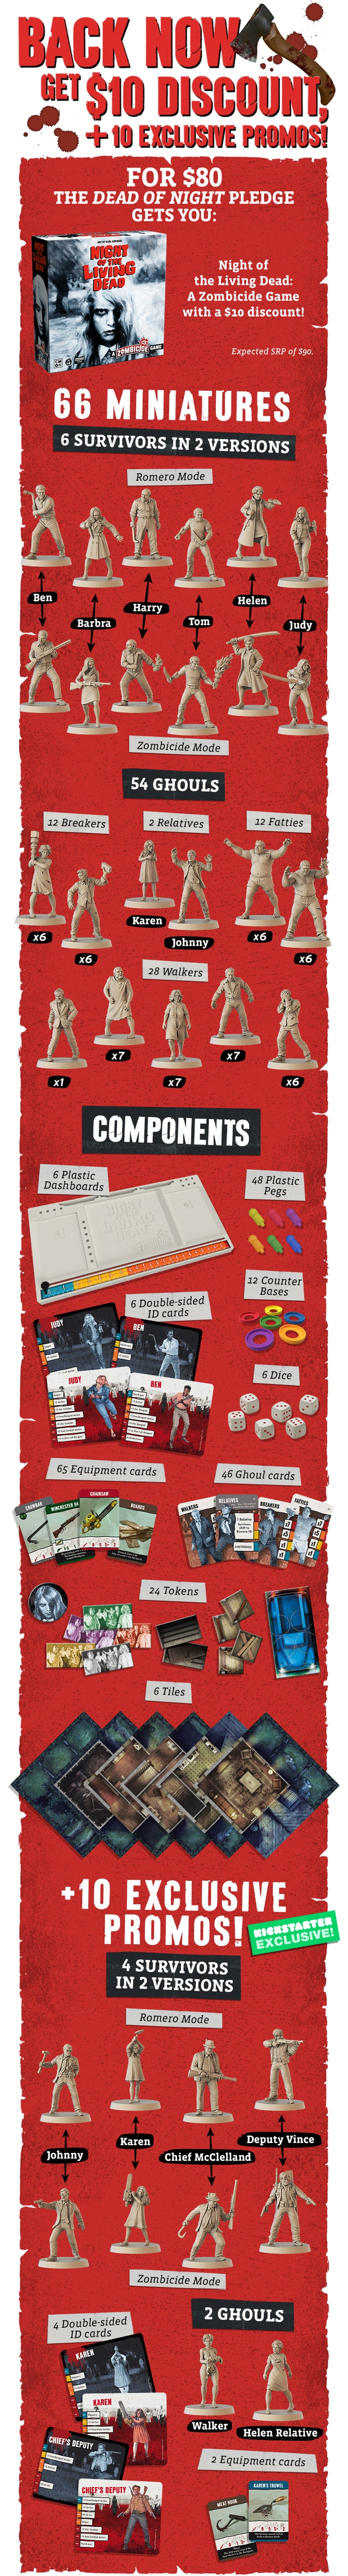 Night Of The Living Dead Contents - CMON